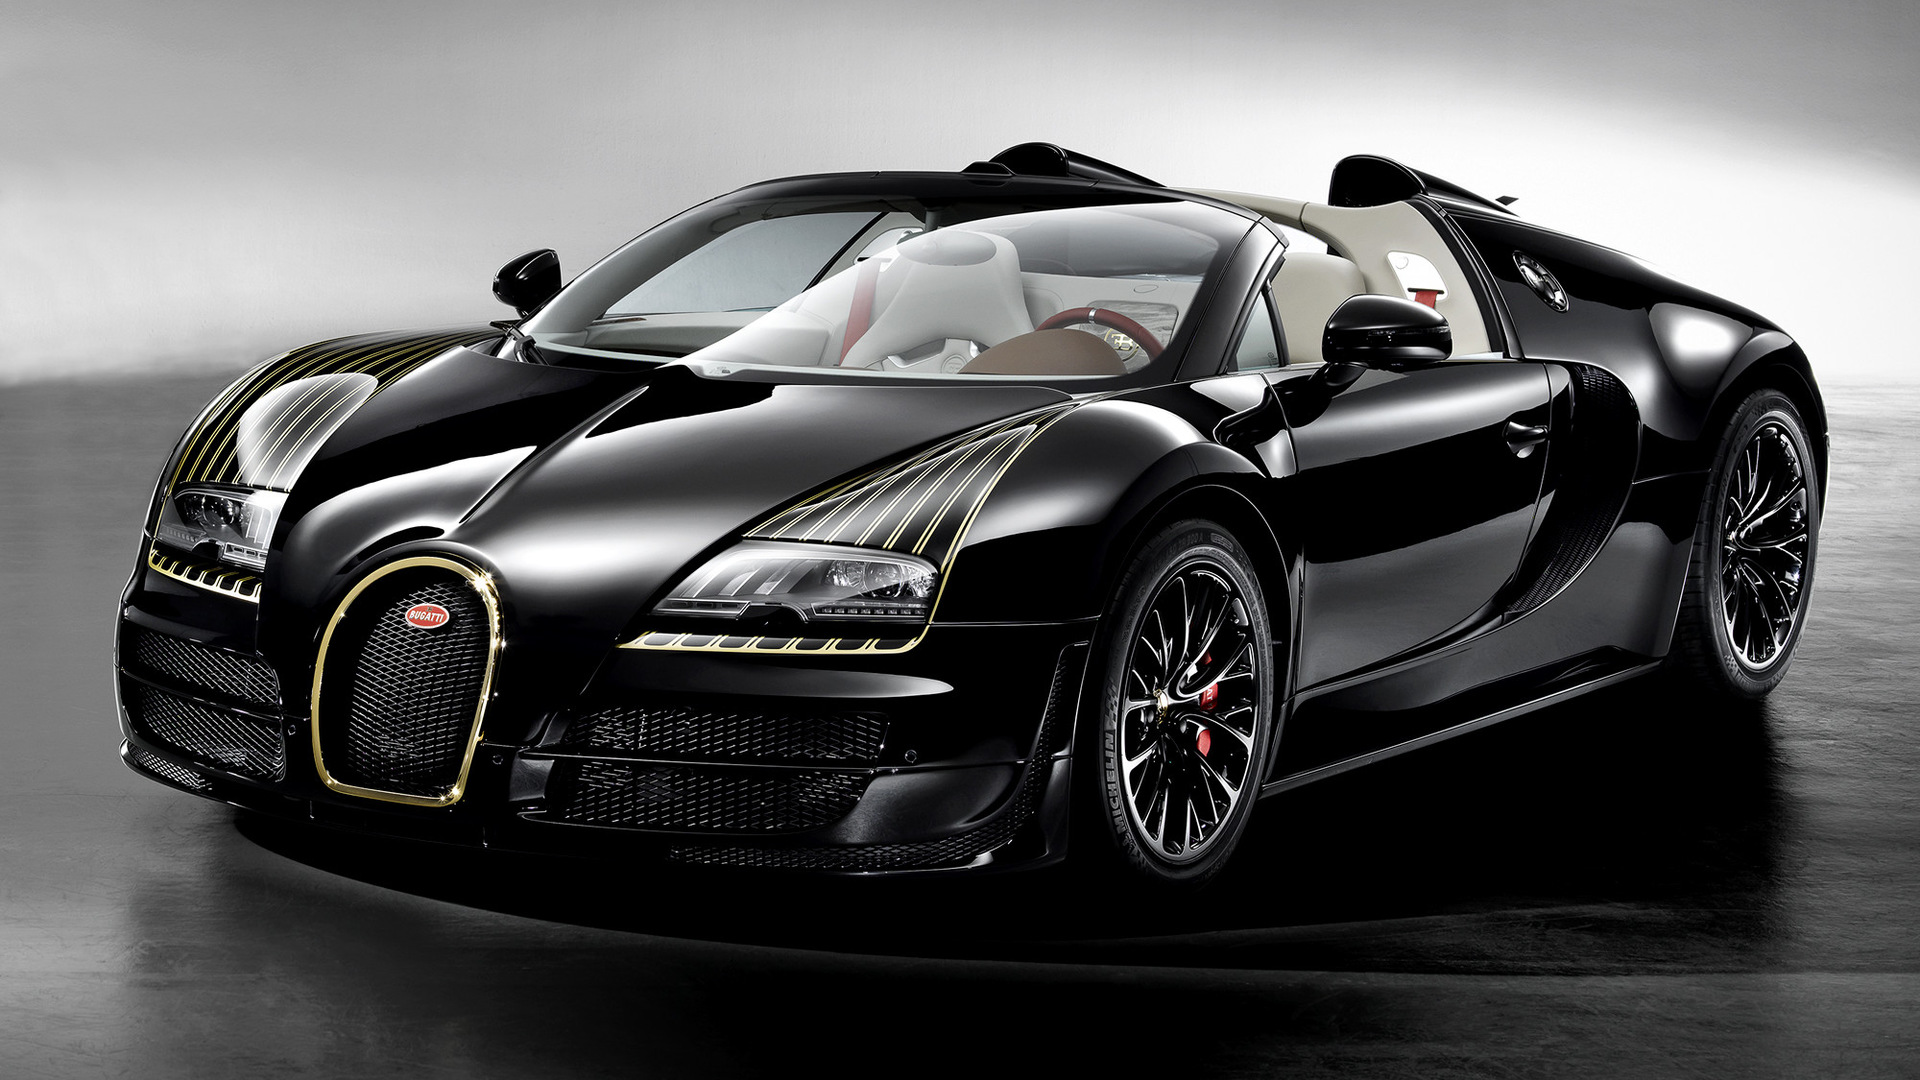 bugatti veyron grand sport vitesse black bess 2014 wallpapers and hd images. Black Bedroom Furniture Sets. Home Design Ideas